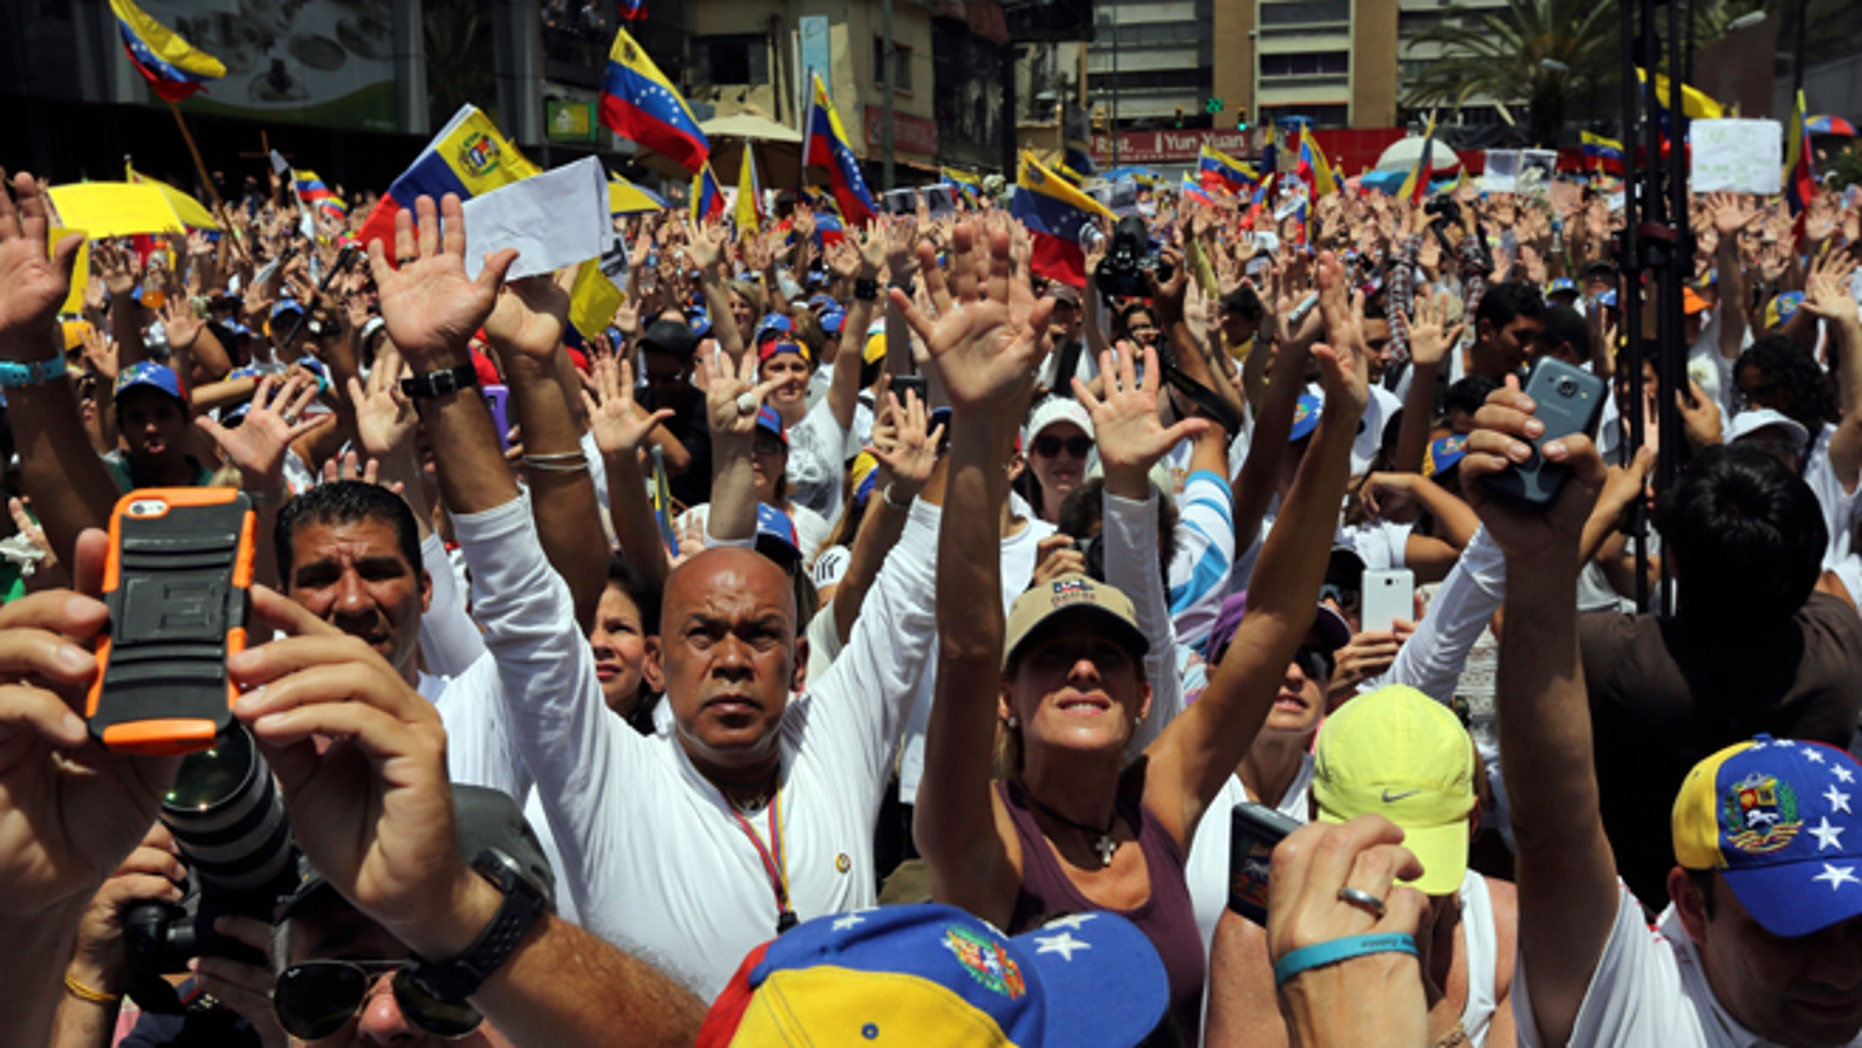 Demonstrators raise their arms in unison during a demonstration honoring the victims who died in last month's anti-government protests, in Caracas, Venezuela, Tuesday, March 4, 2014. Venezuelan opposition leader Henrique Capriles called Monday for citizens to begin organizing committees that could sustain the pressure that continuing street protests have placed on President Nicolas Maduro's government. (AP Photo/Fernando Llano)